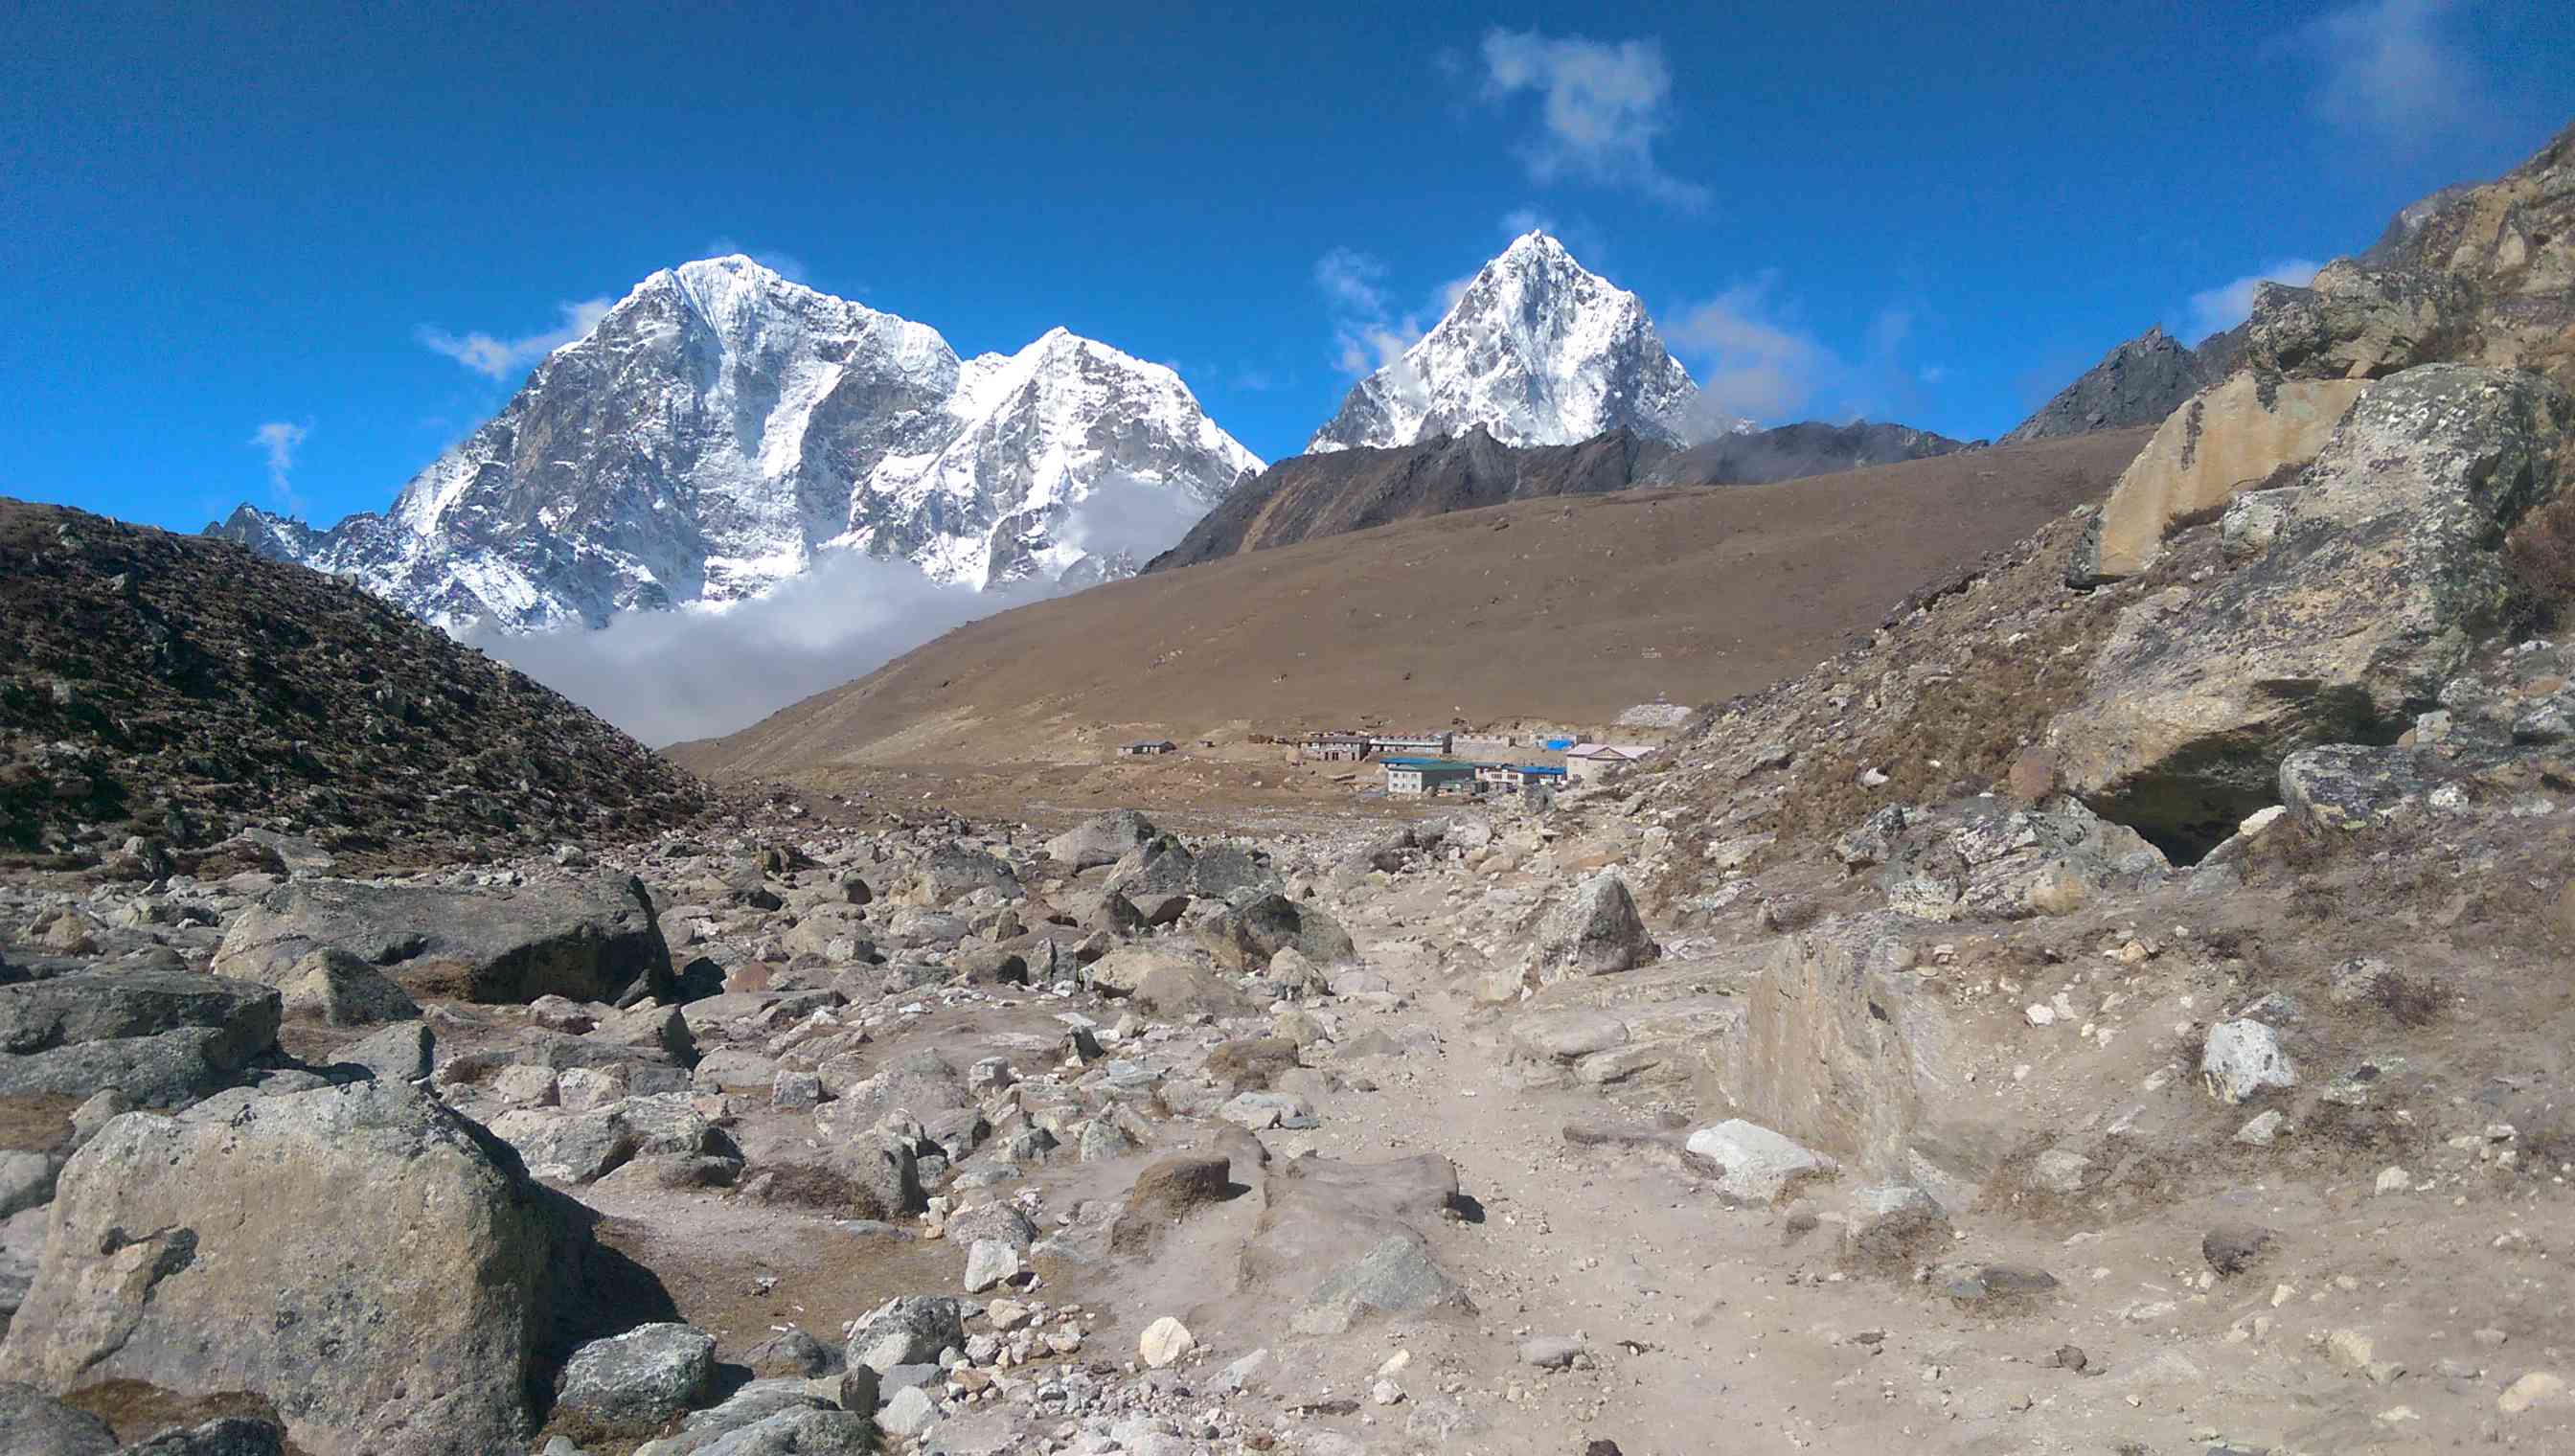 A distant village on the trail to Everest Base Camp